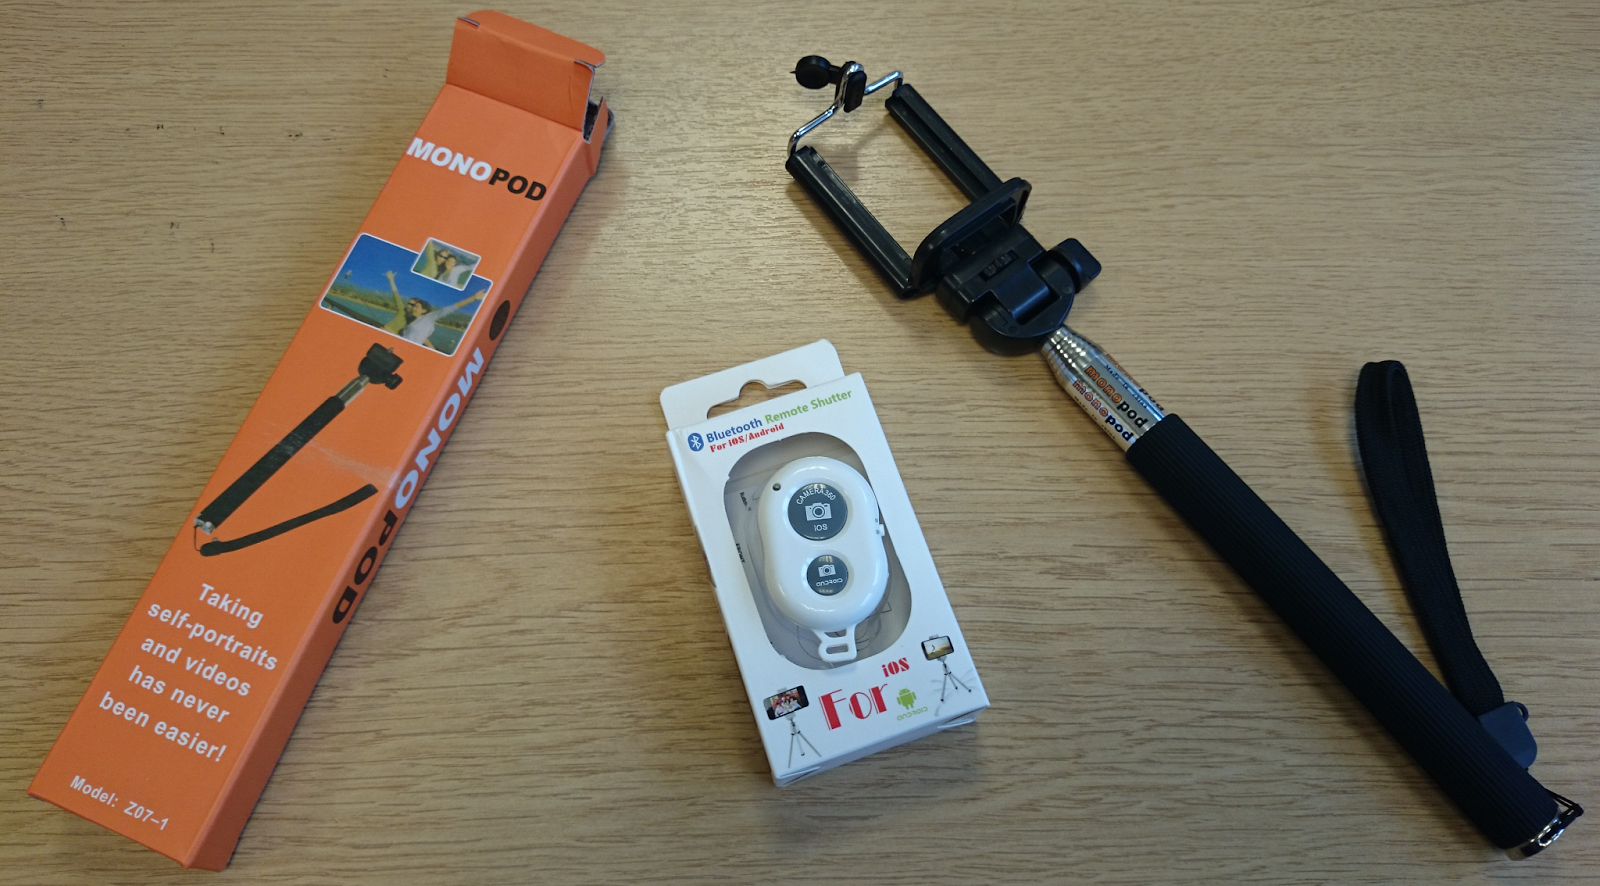 the selfie selfy stick monopod bluetooth remote shutter button review